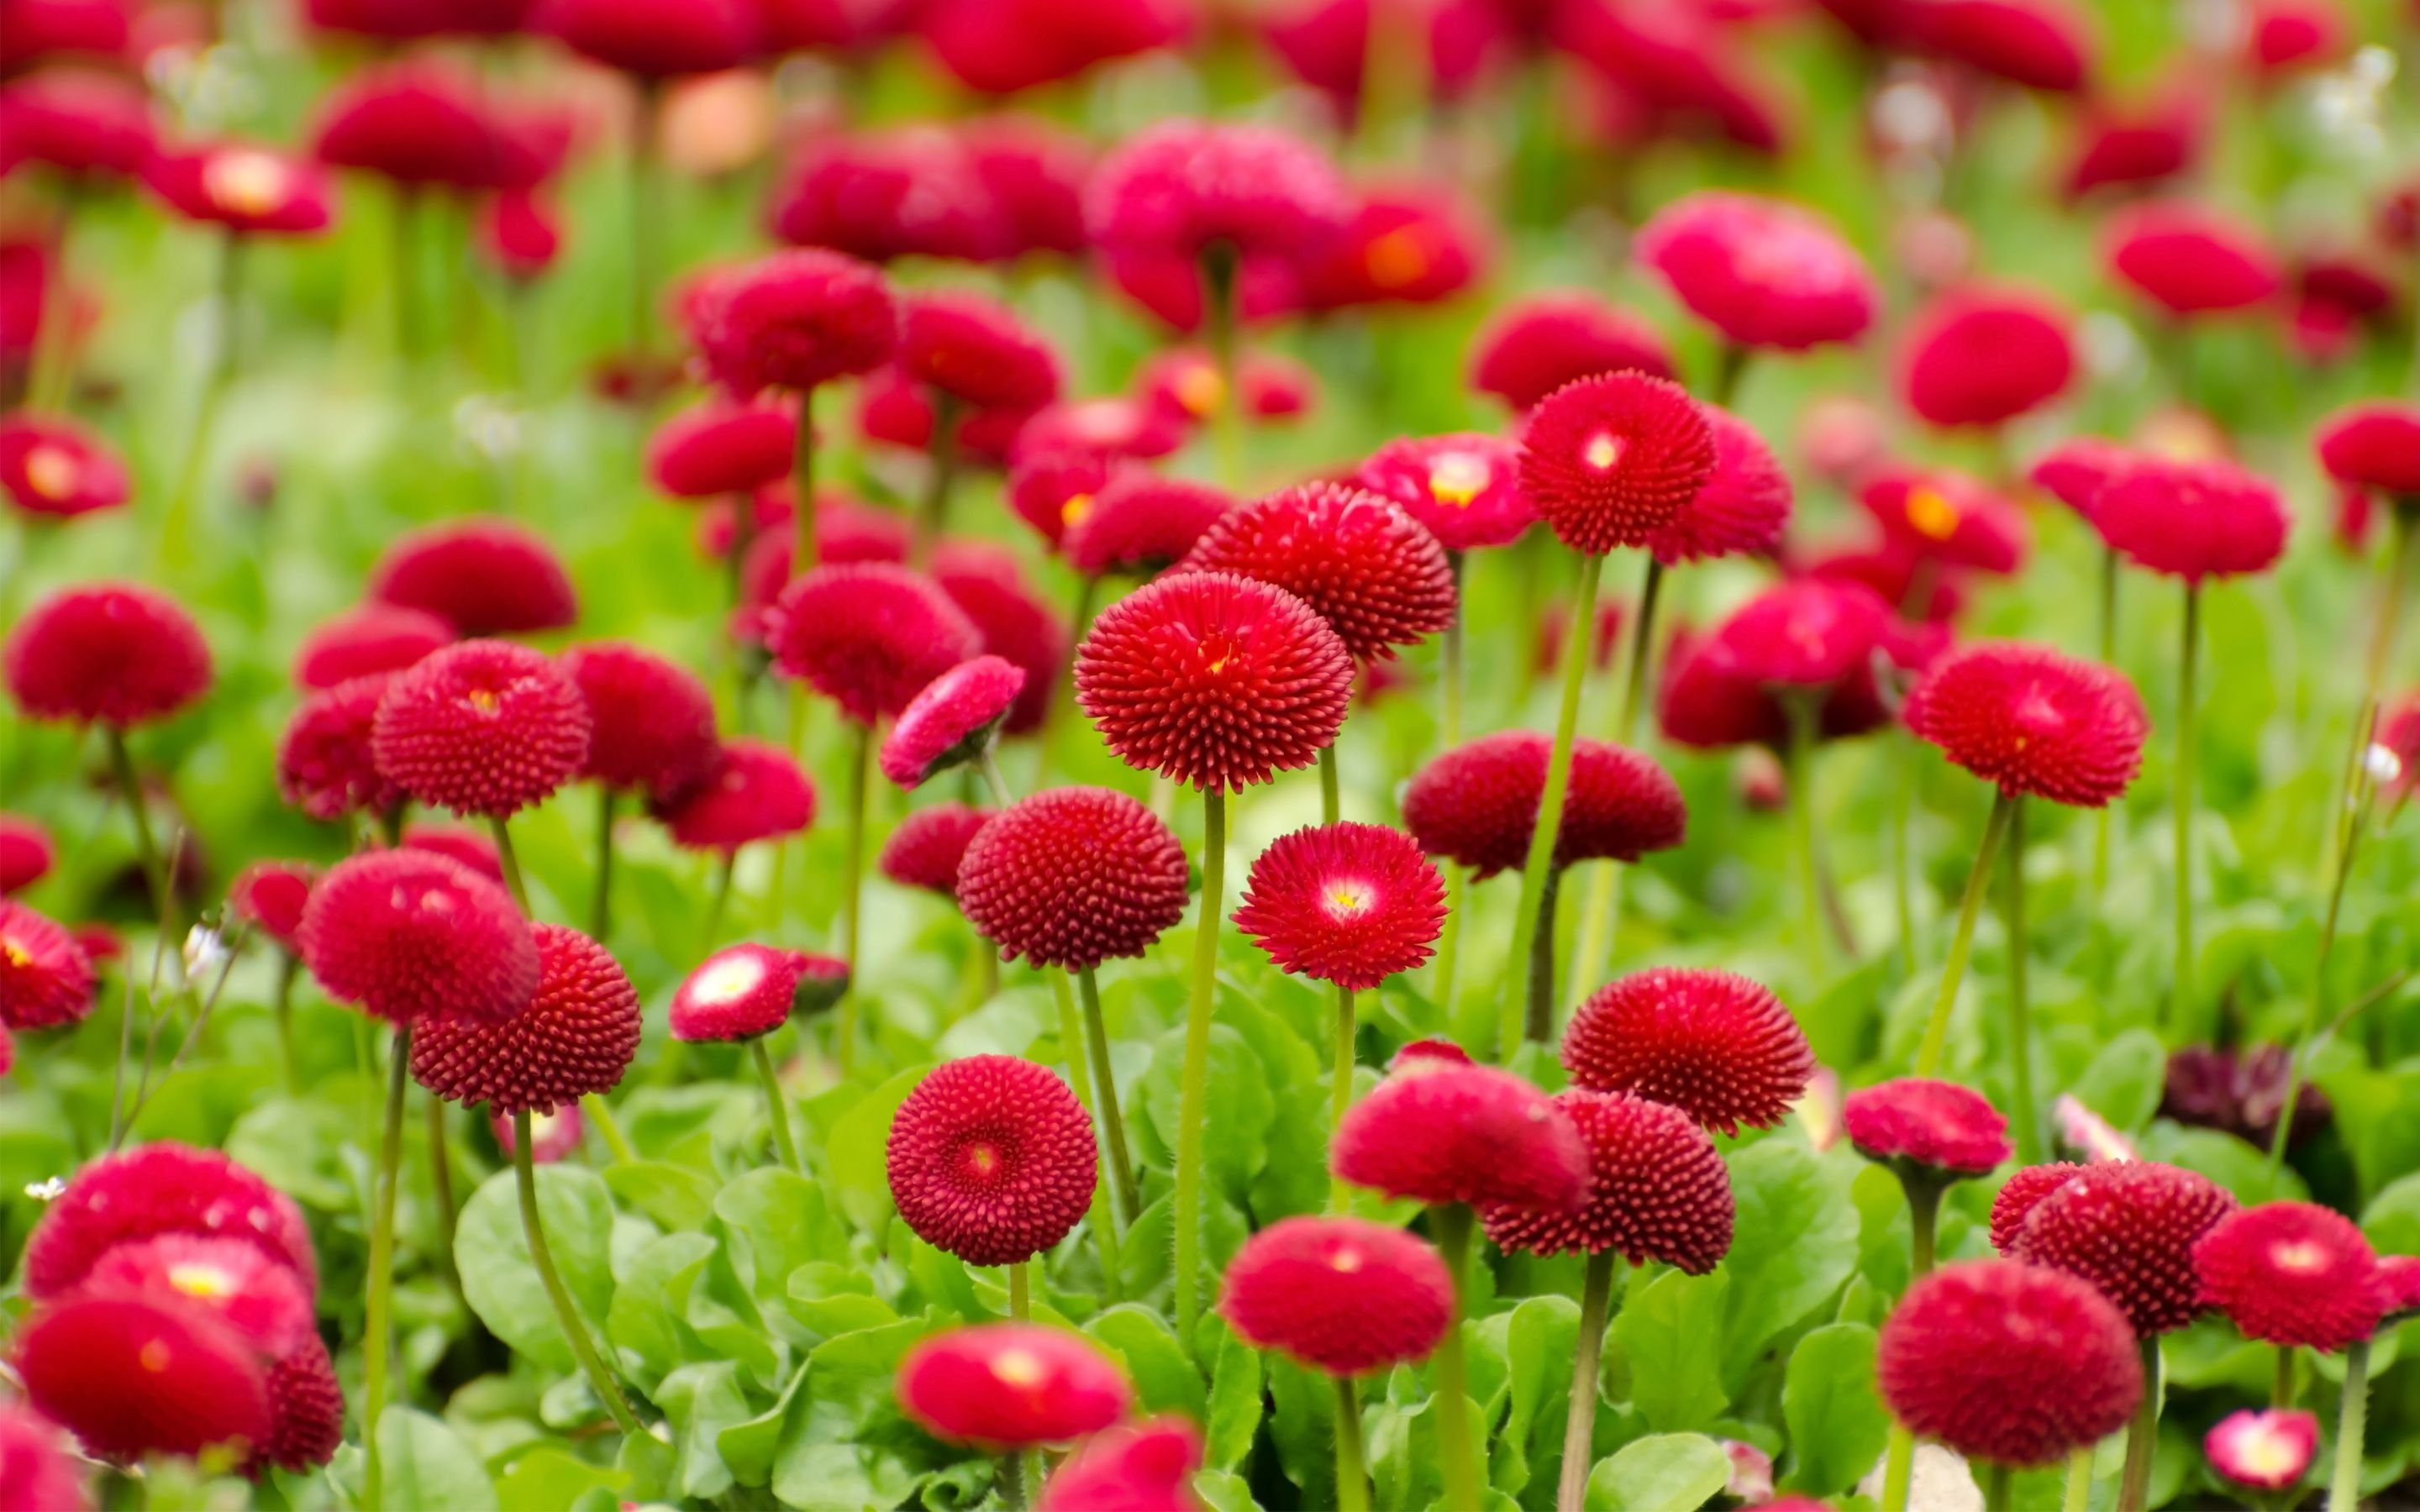 Gallery of 43 Red Flower Backgrounds, Wallpapers   B.SCB Wallpapers